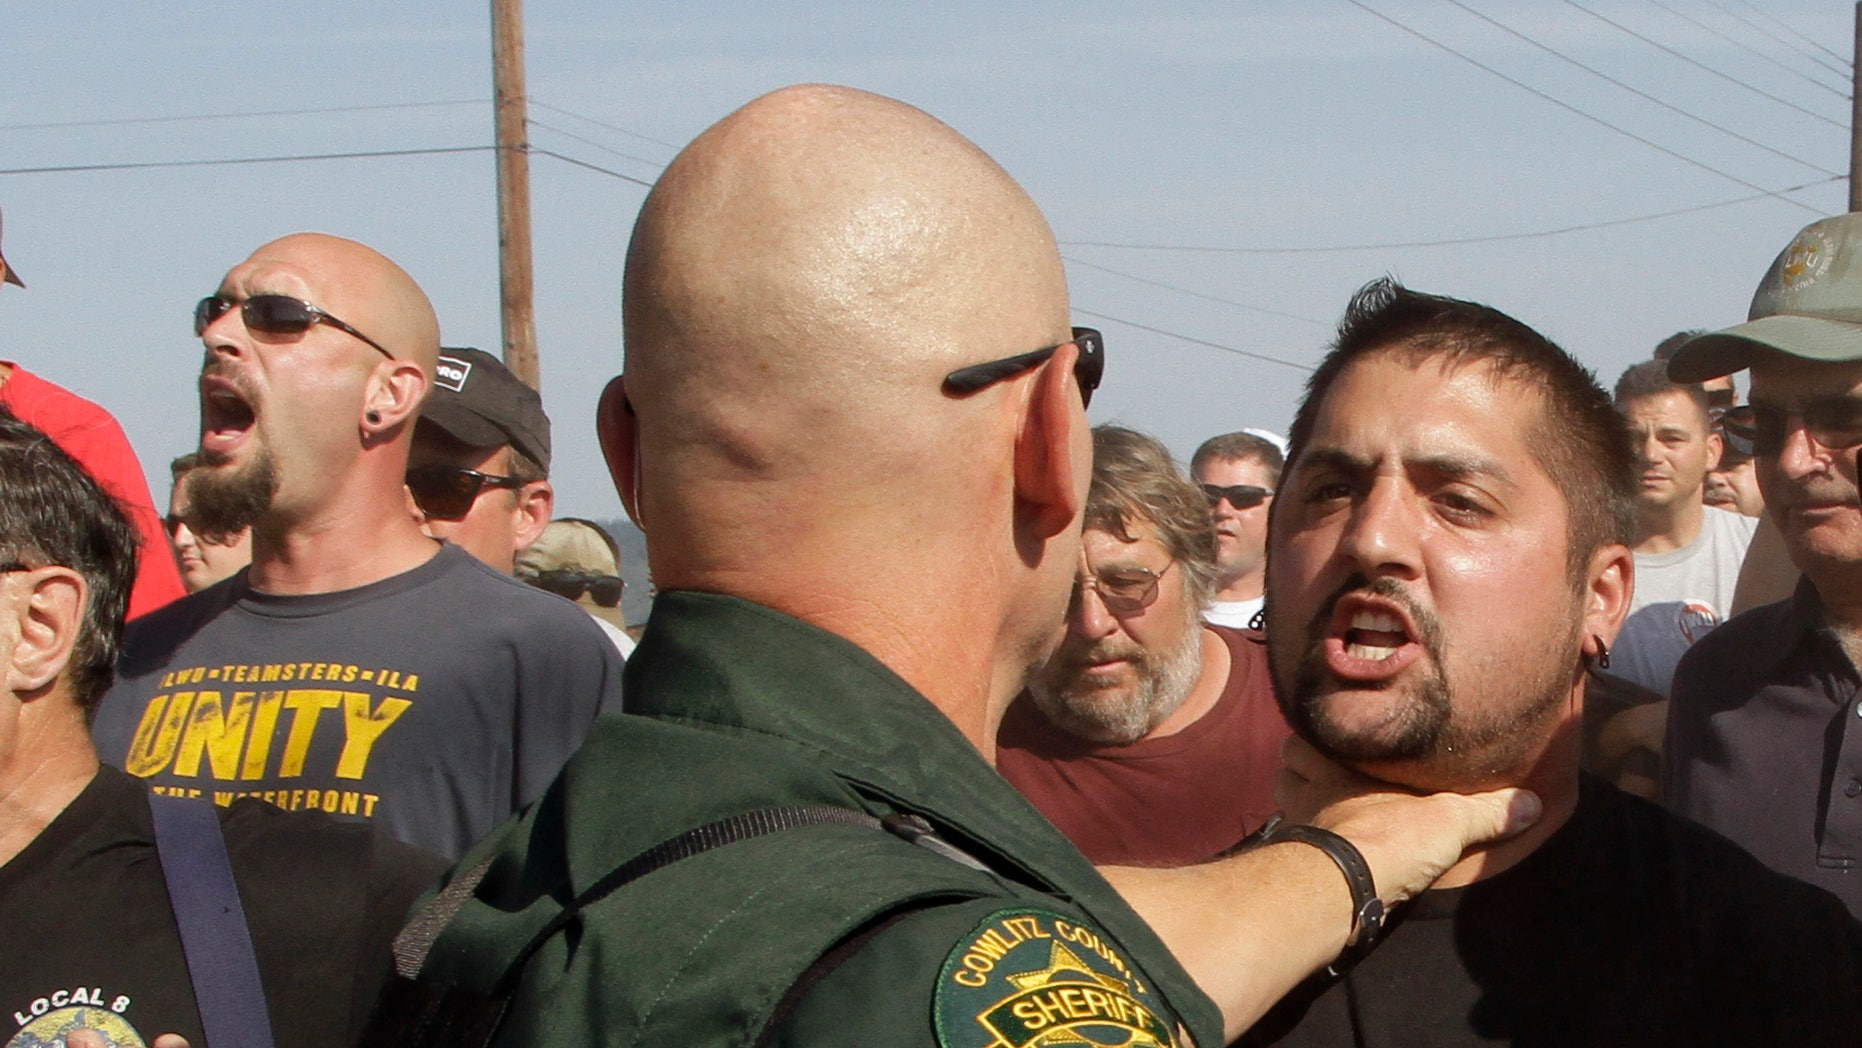 A Cowlitz County Sheriff grabs a union worker by the throat as police move in on several hundred union workers blocking a grain train in Longview, Wash., Wednesday, Sept. 7, 2011.